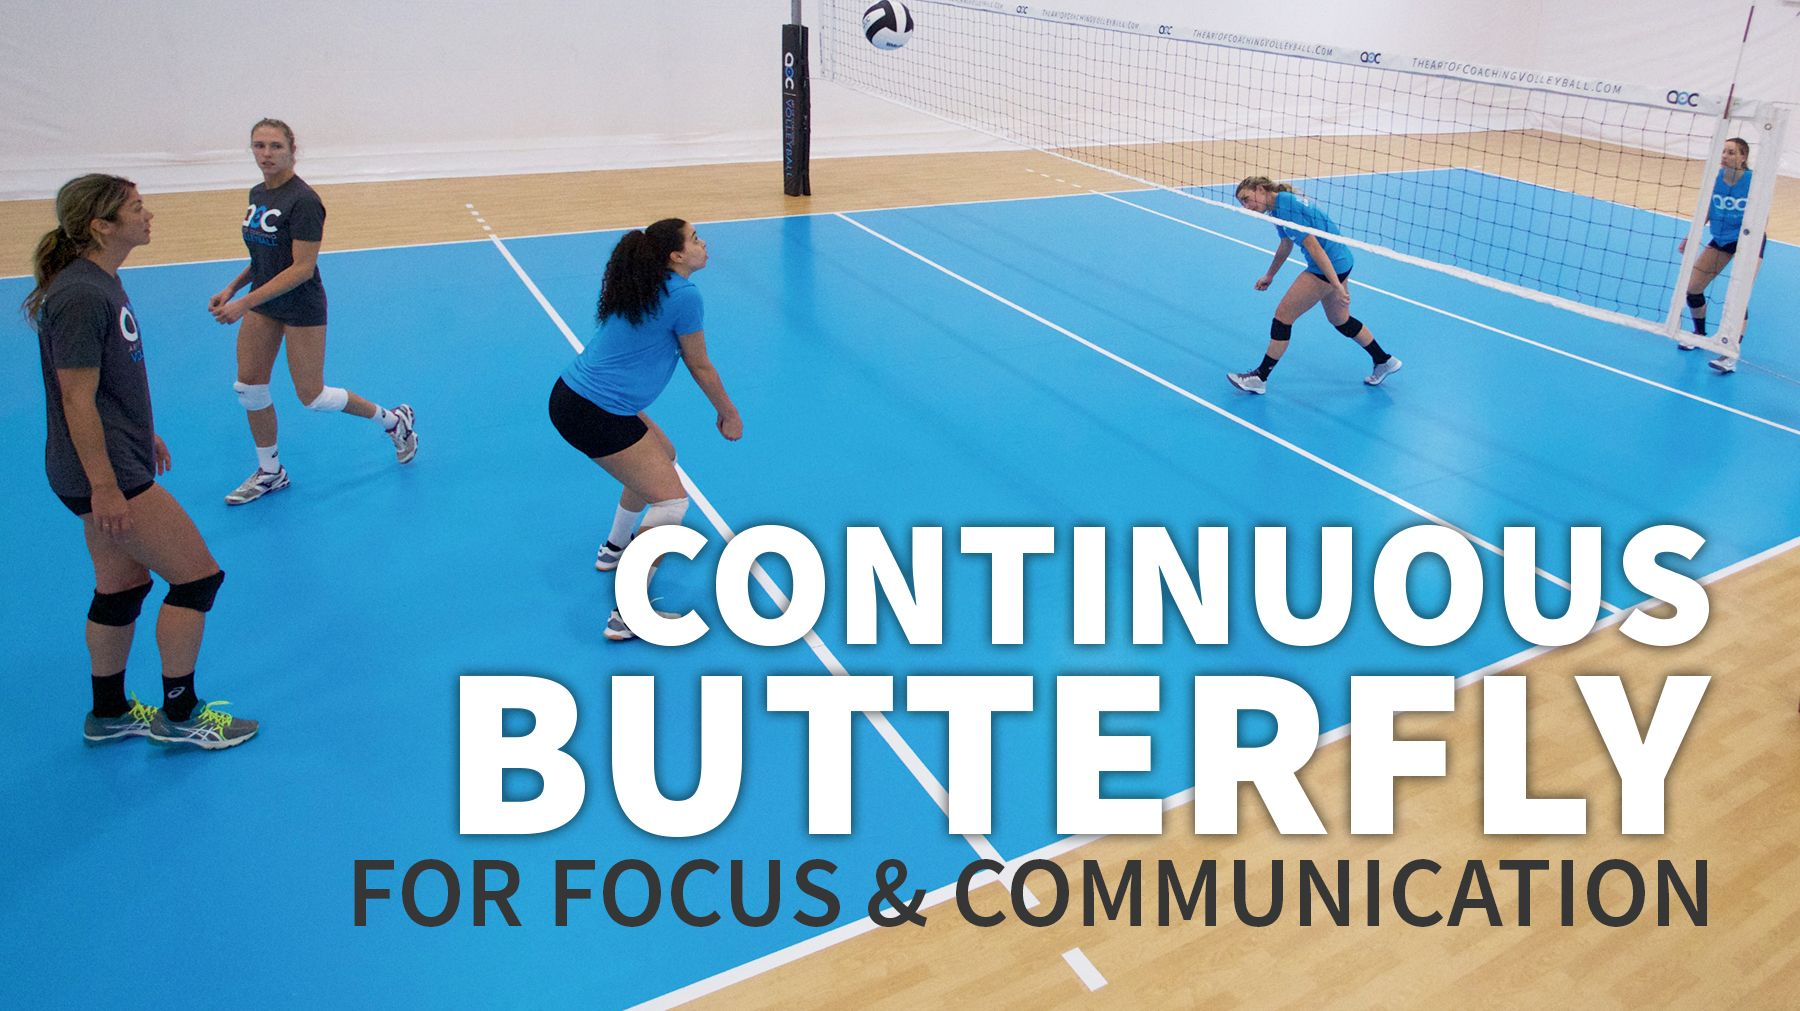 Continuous Butterfly To Train Focus And Communication Skills The Art Of Coaching Volleyball Volleyball Skills Volleyball Drills Coaching Volleyball